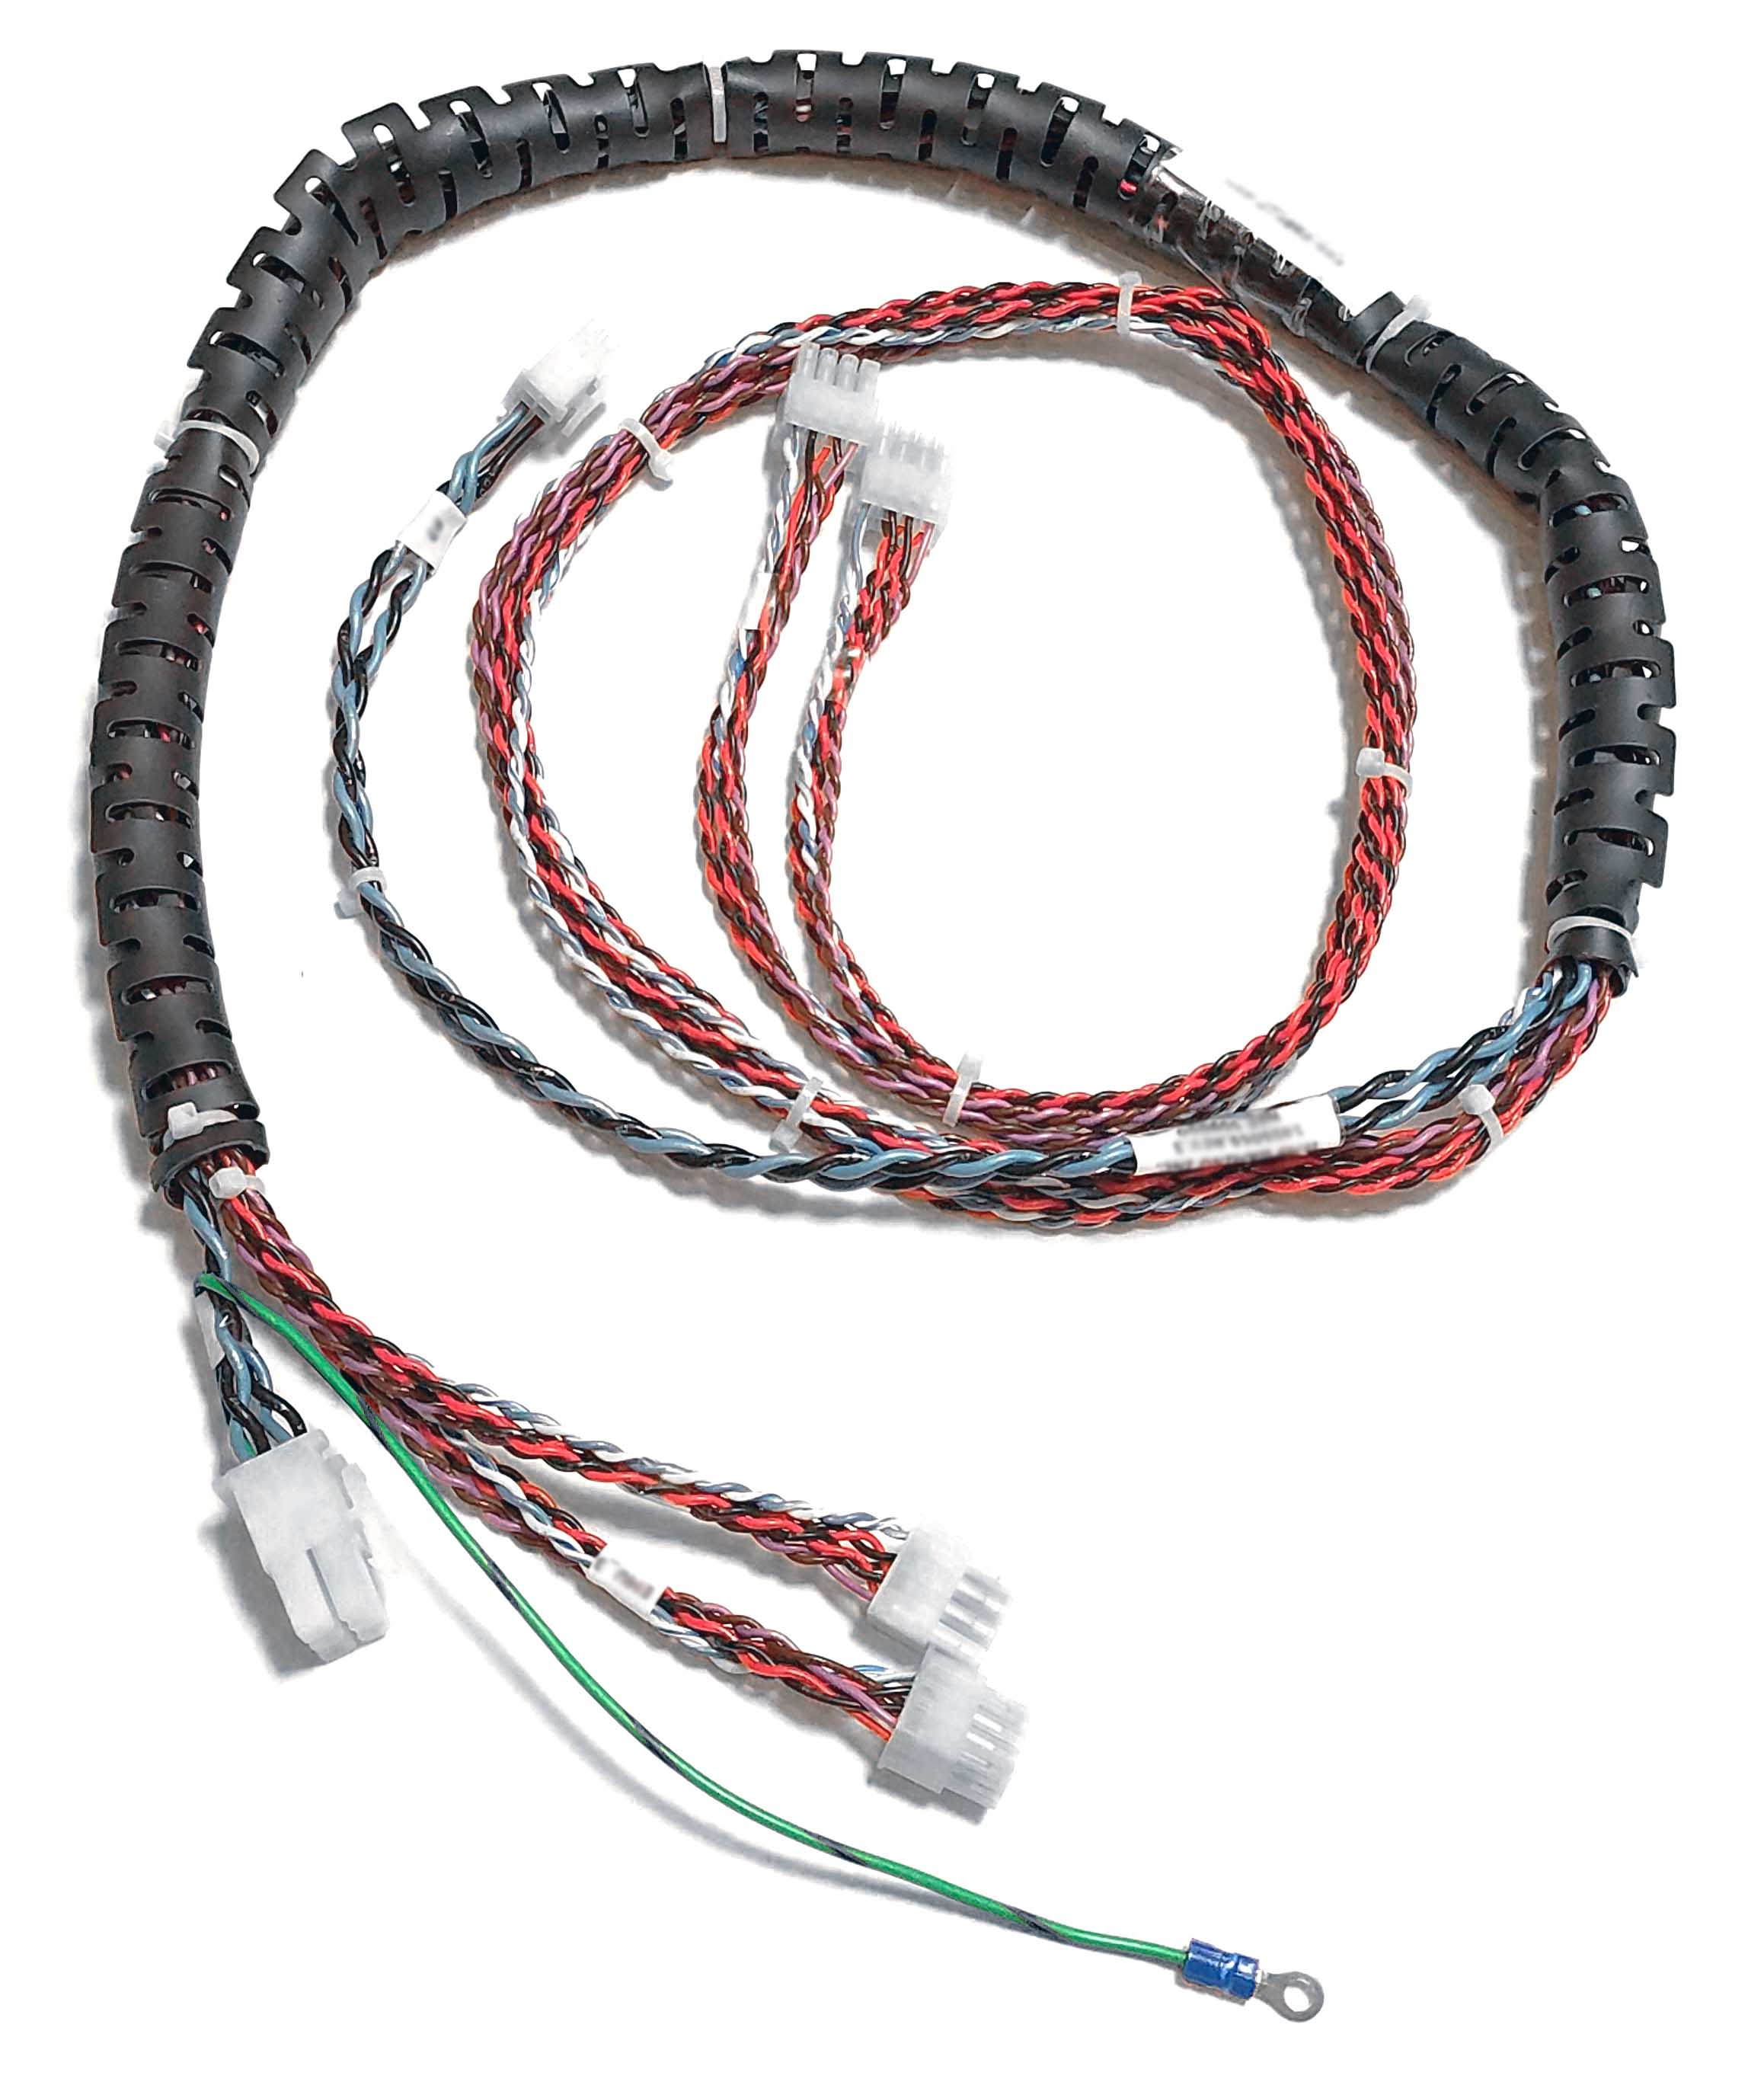 Cable Harness Manufacturing Nep Electronics Wire Harnesses Here Are Some Examples Of Our Capabilities Listed Above